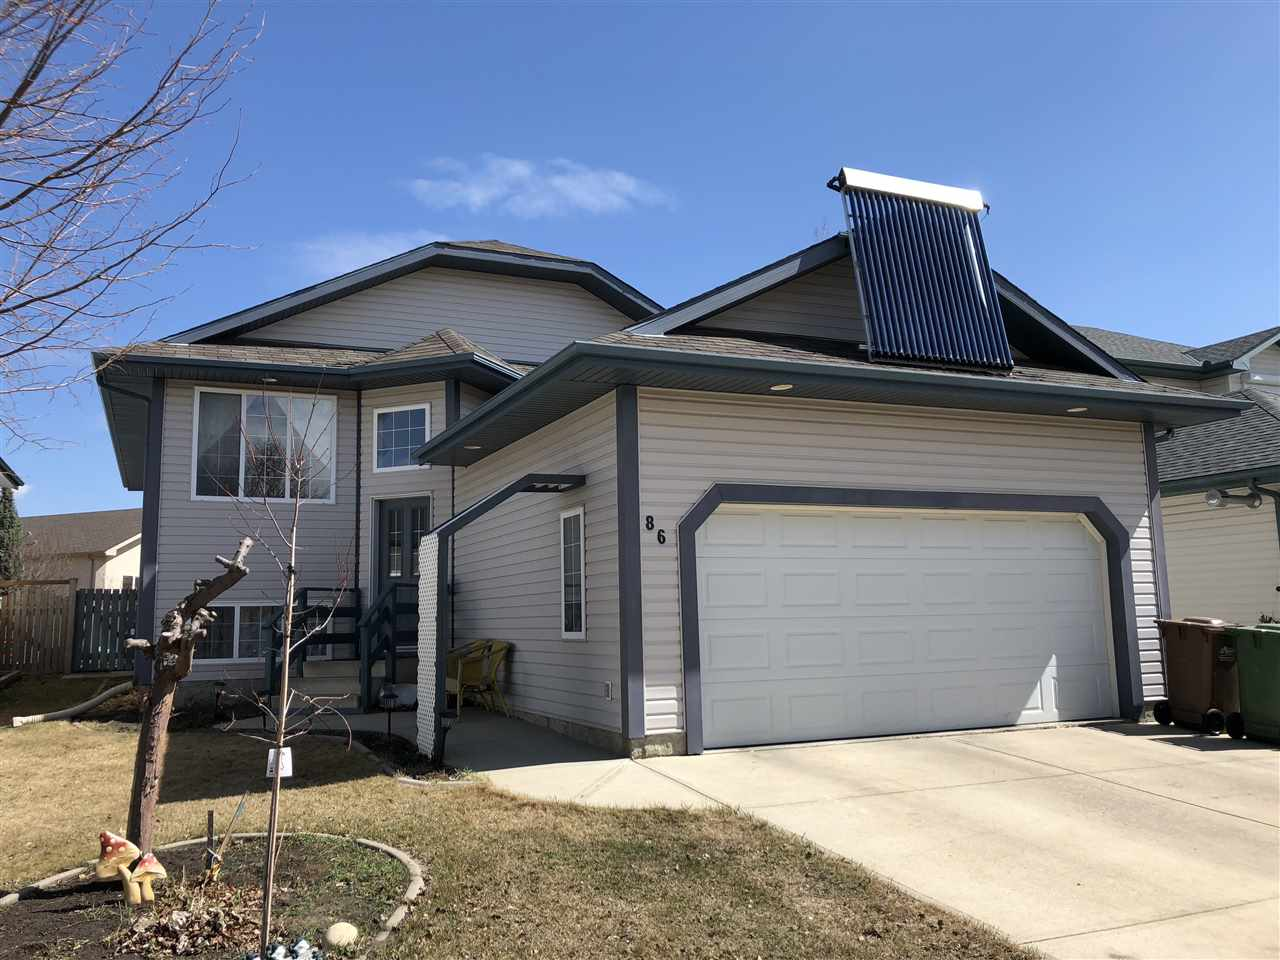 Main Photo: 86 OAKRIDGE Drive: St. Albert House for sale : MLS®# E4105443